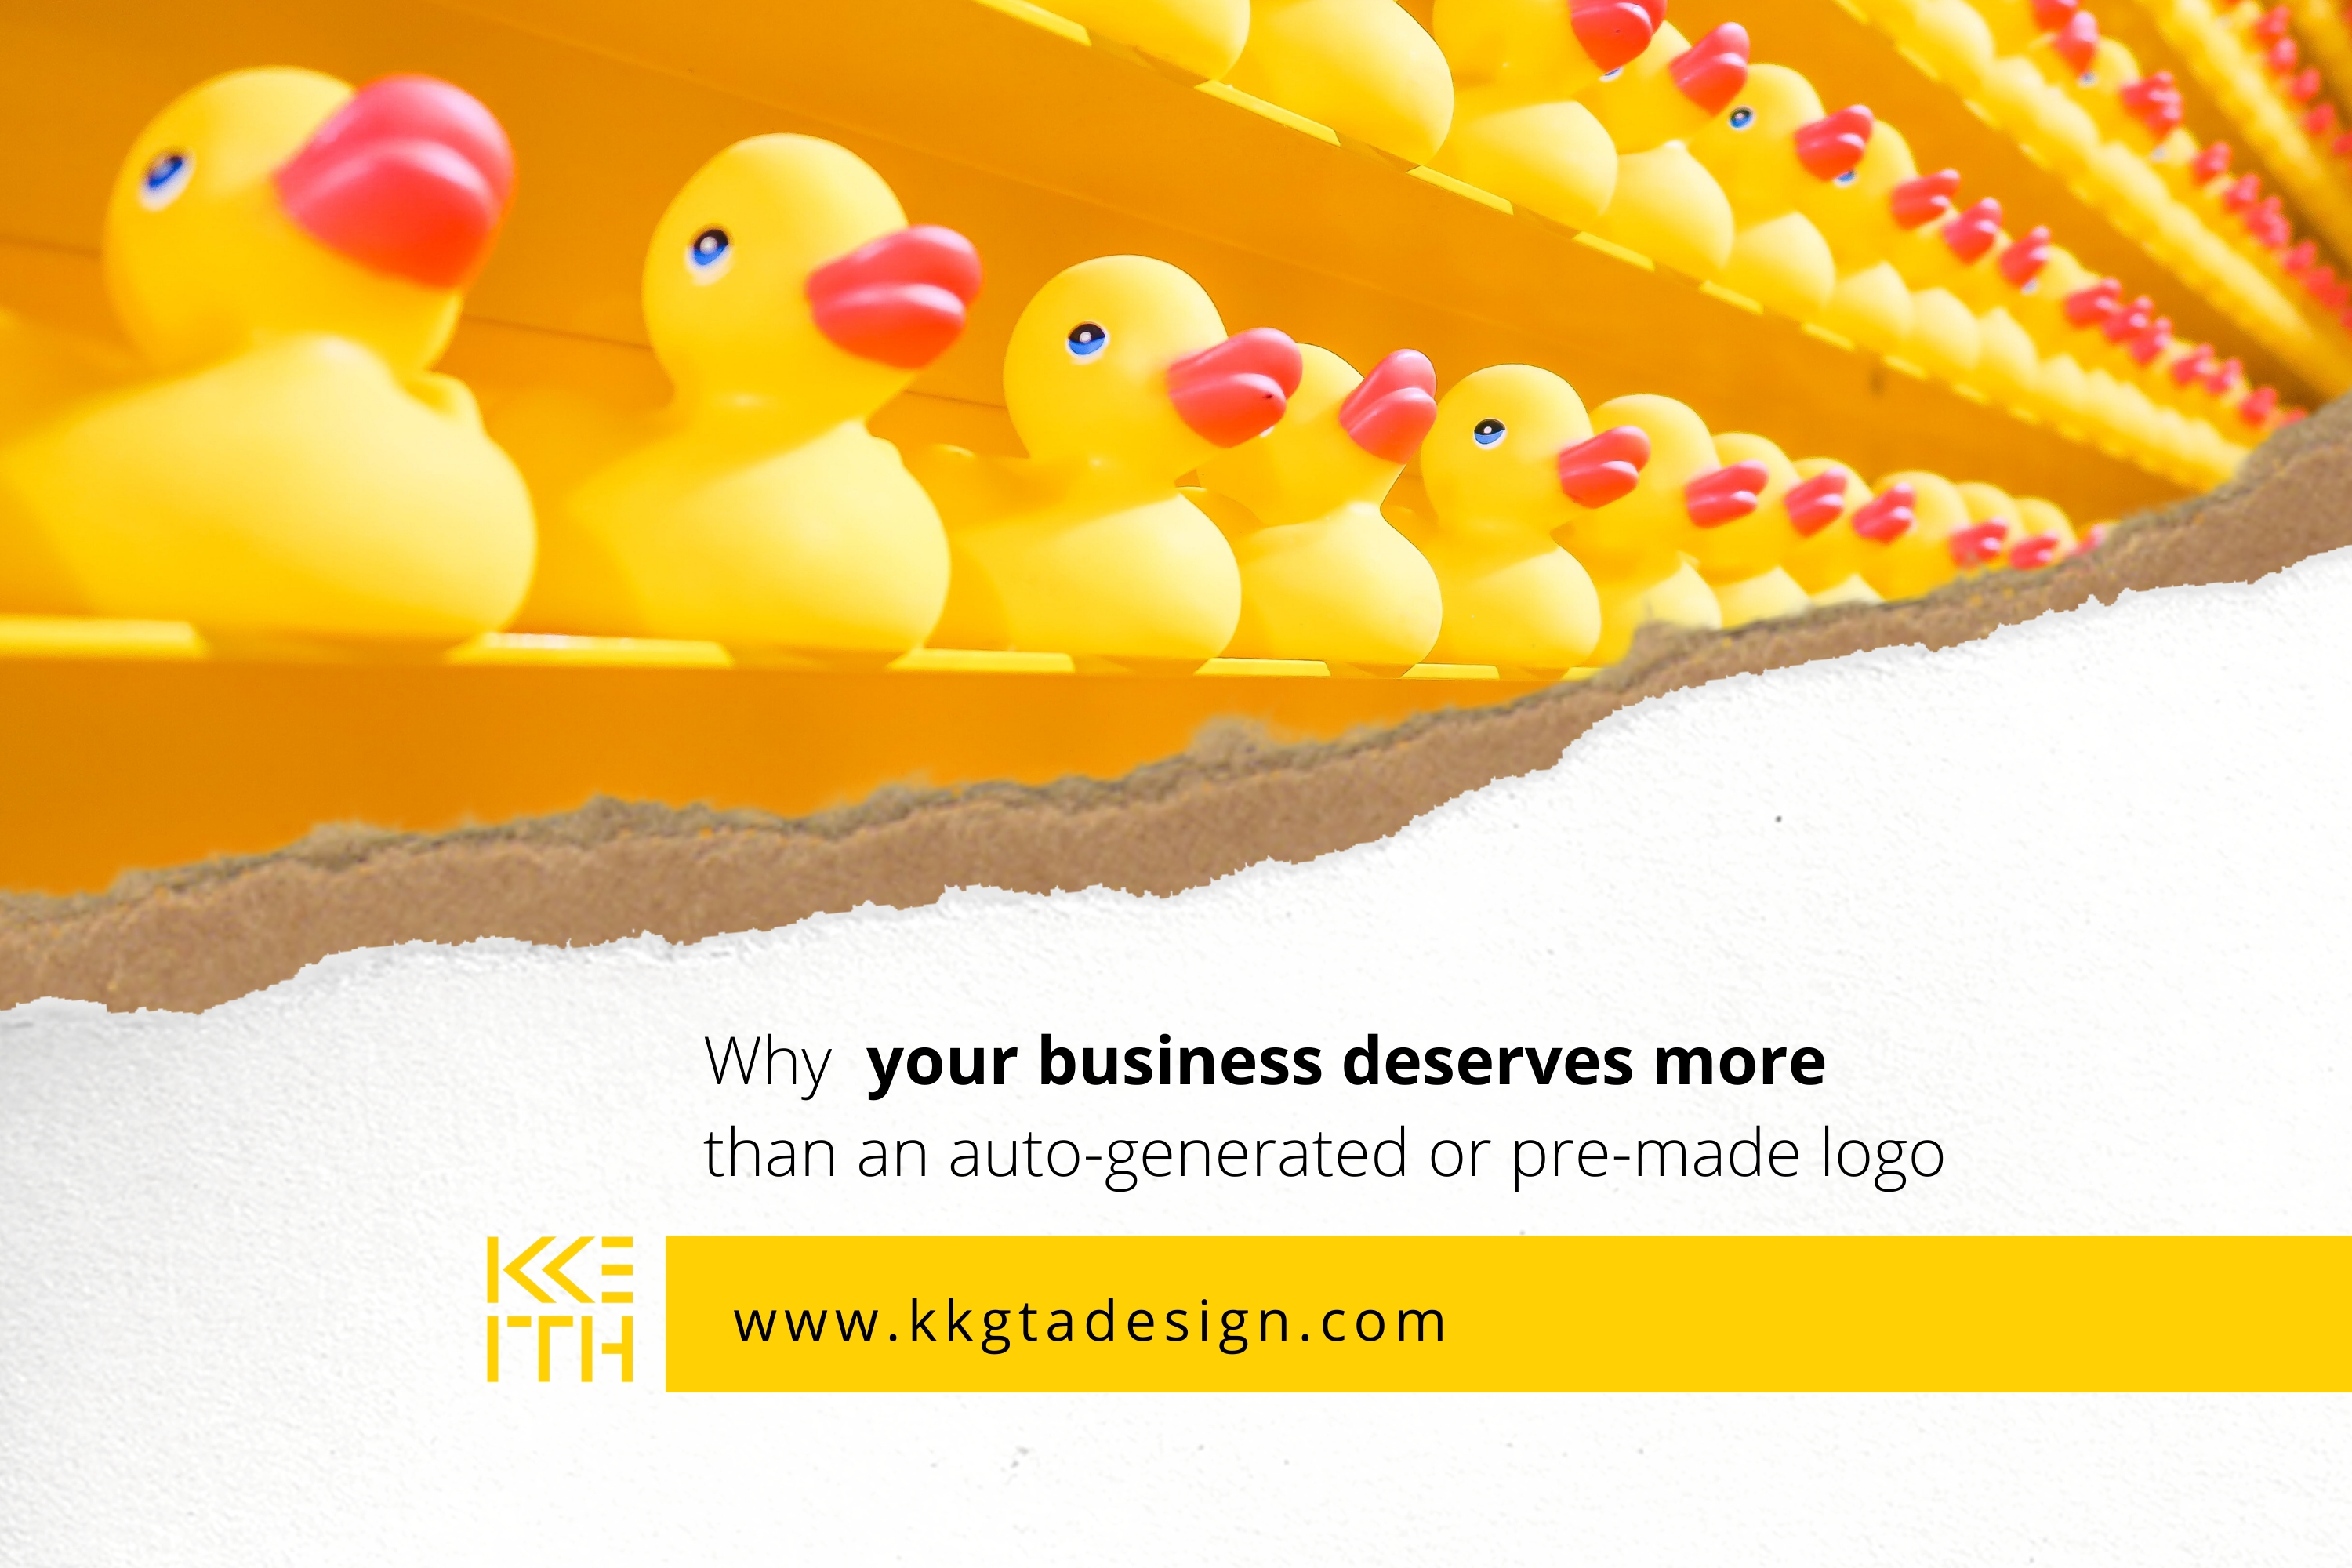 Why Your Business Deserves More Than A Pre-made Or Auto-generated Logo